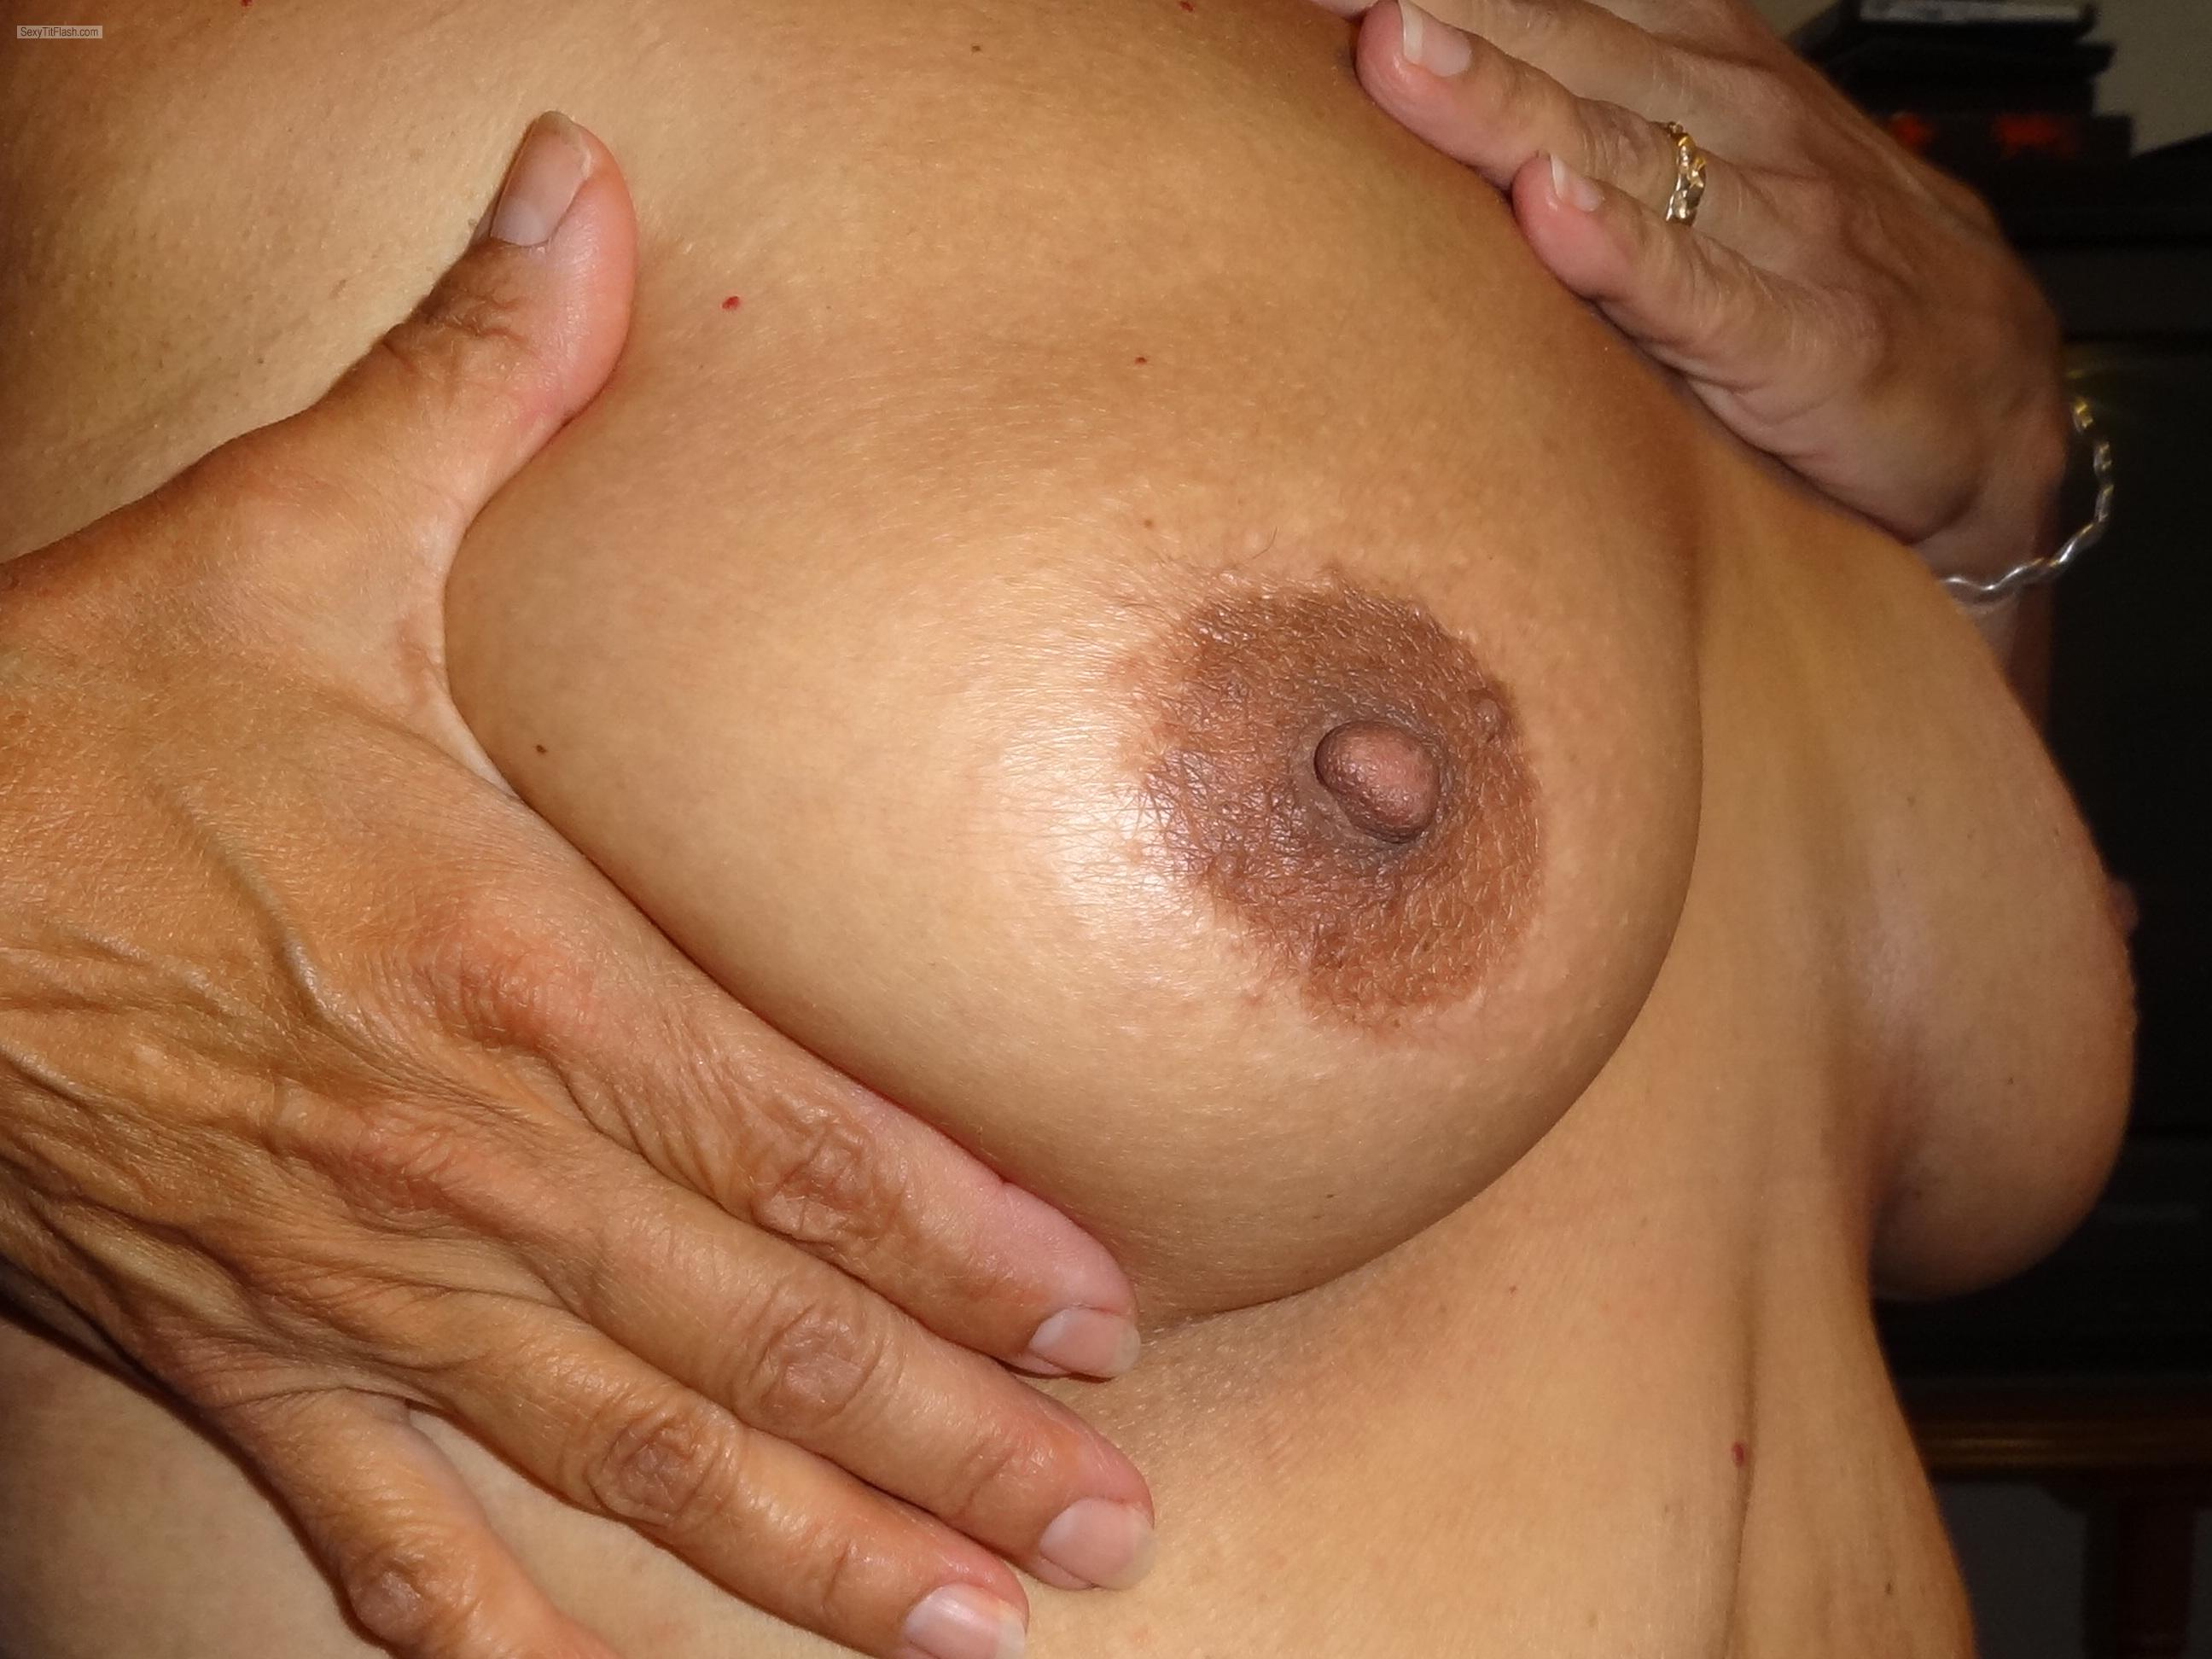 Tit Flash: Wife's Medium Tits - Karentits from United States